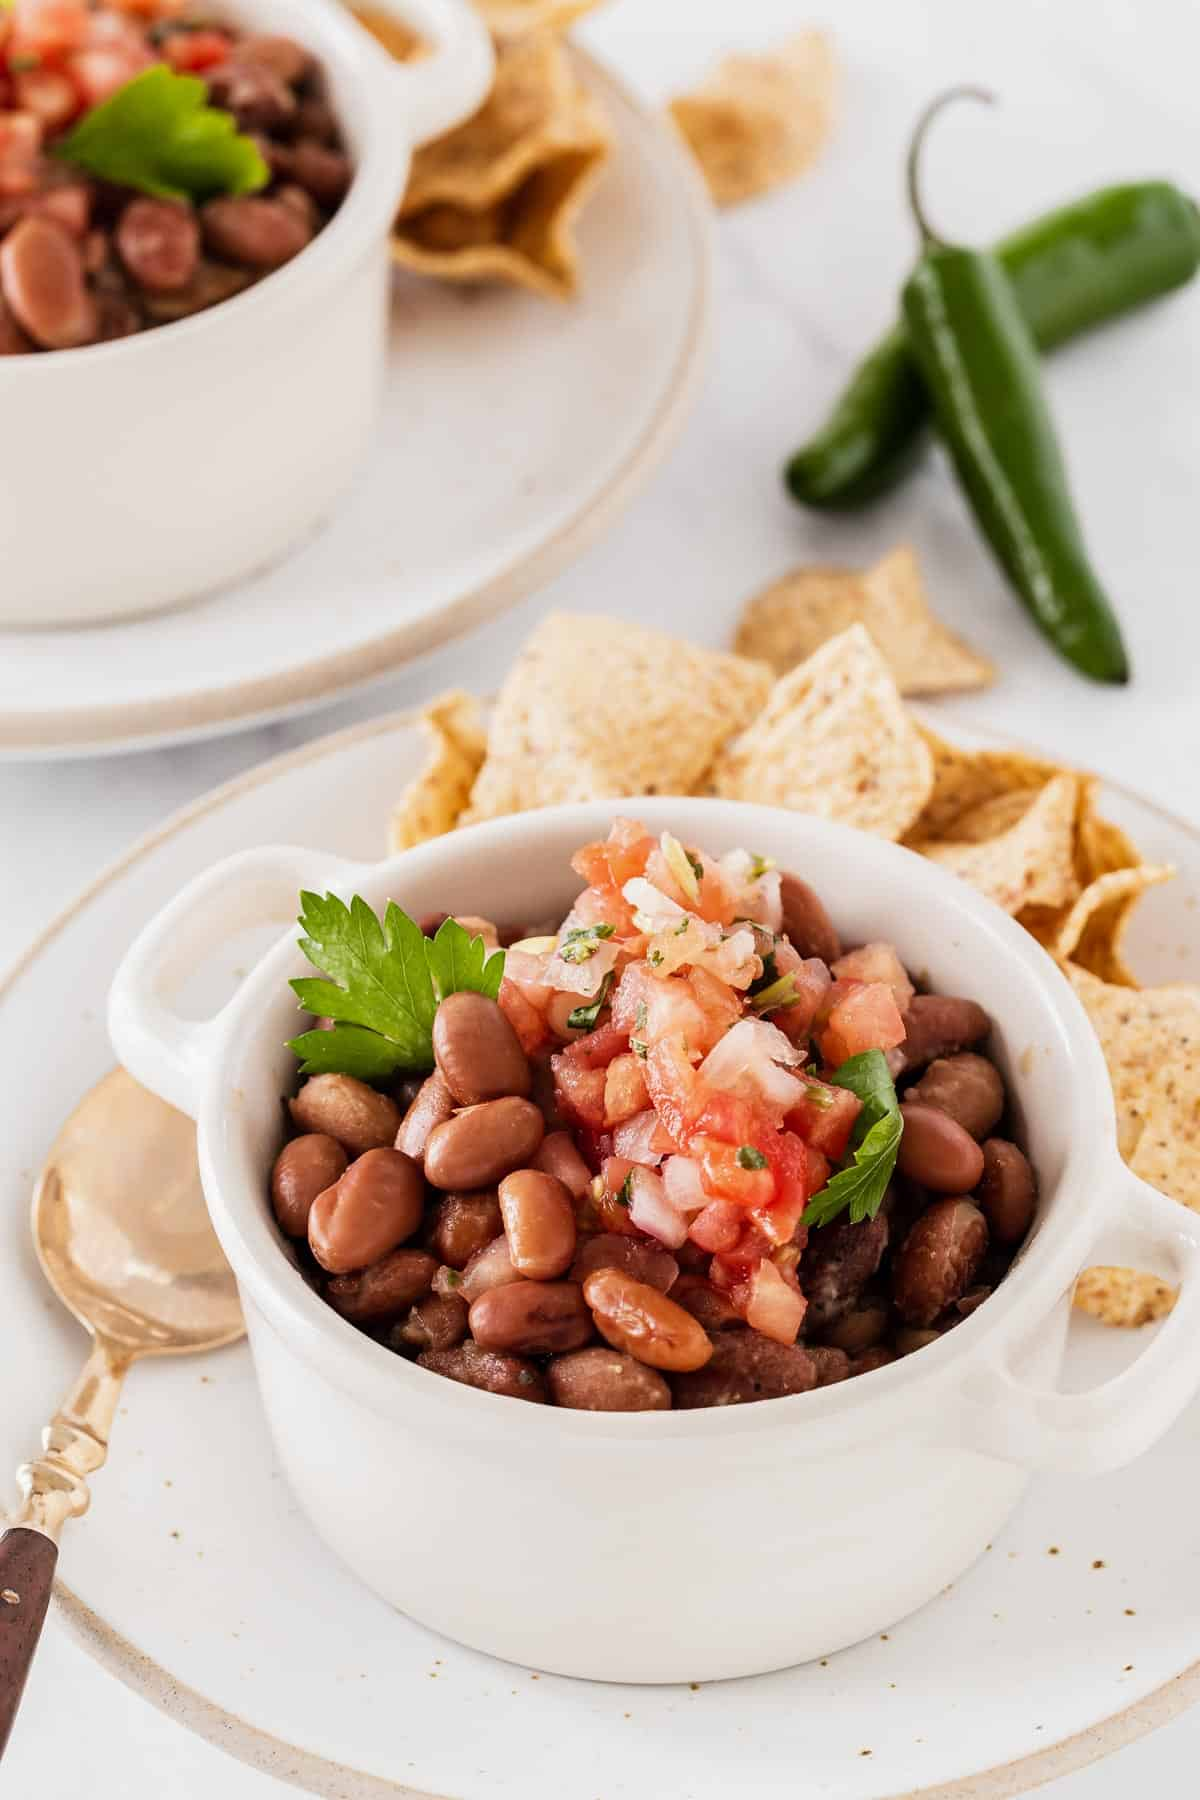 Charro beans in white bowl with chips and jalapeños.